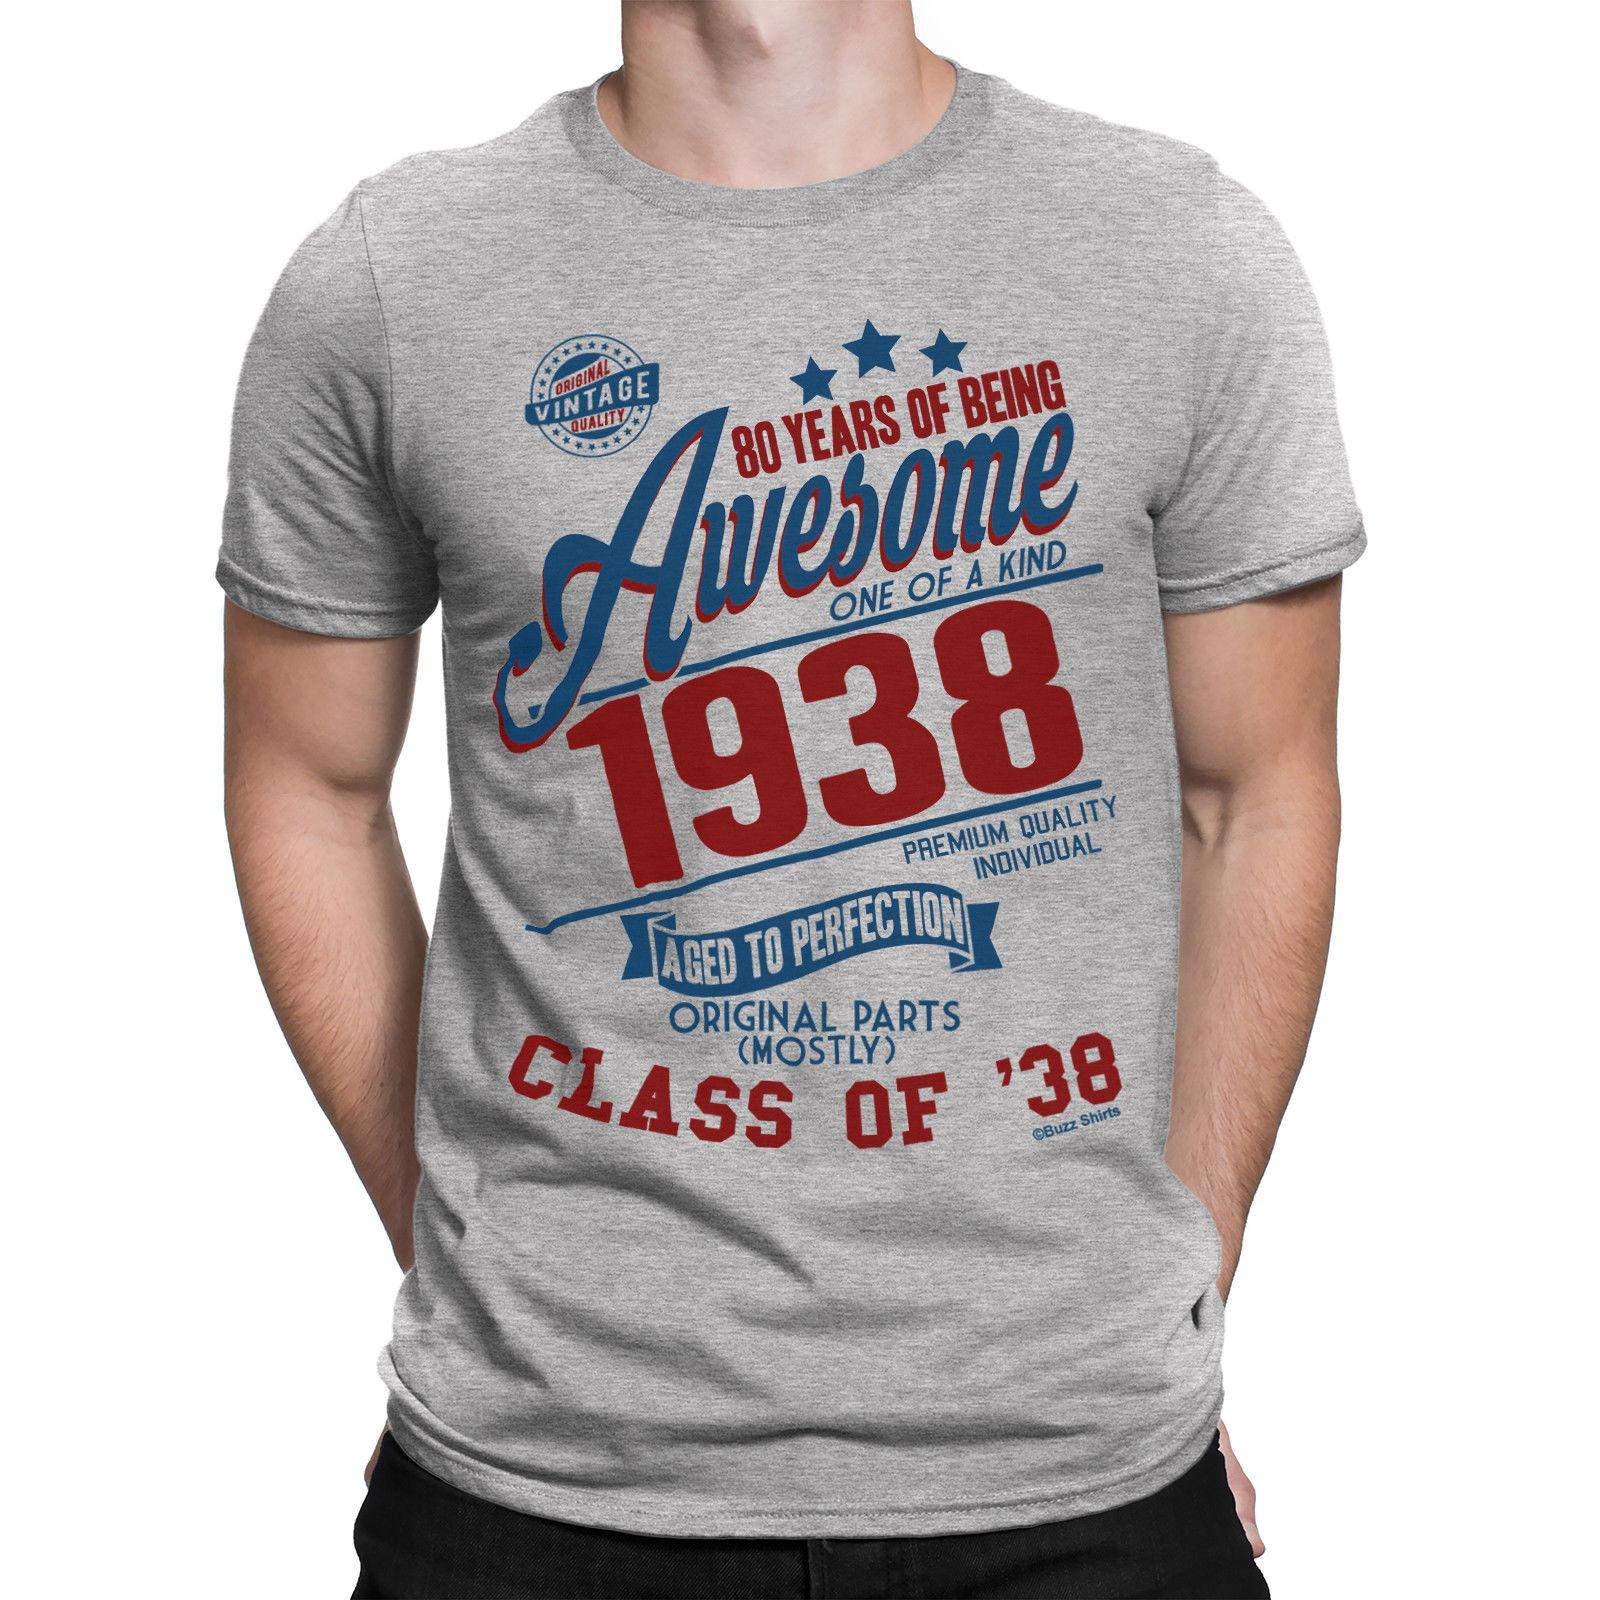 80 Years Of Being Awesome Mens 80th T Shirt Class 1938 Birthday Gift Retro Cool Casual Pride Men Unisex New Fashion Shirts Buy From